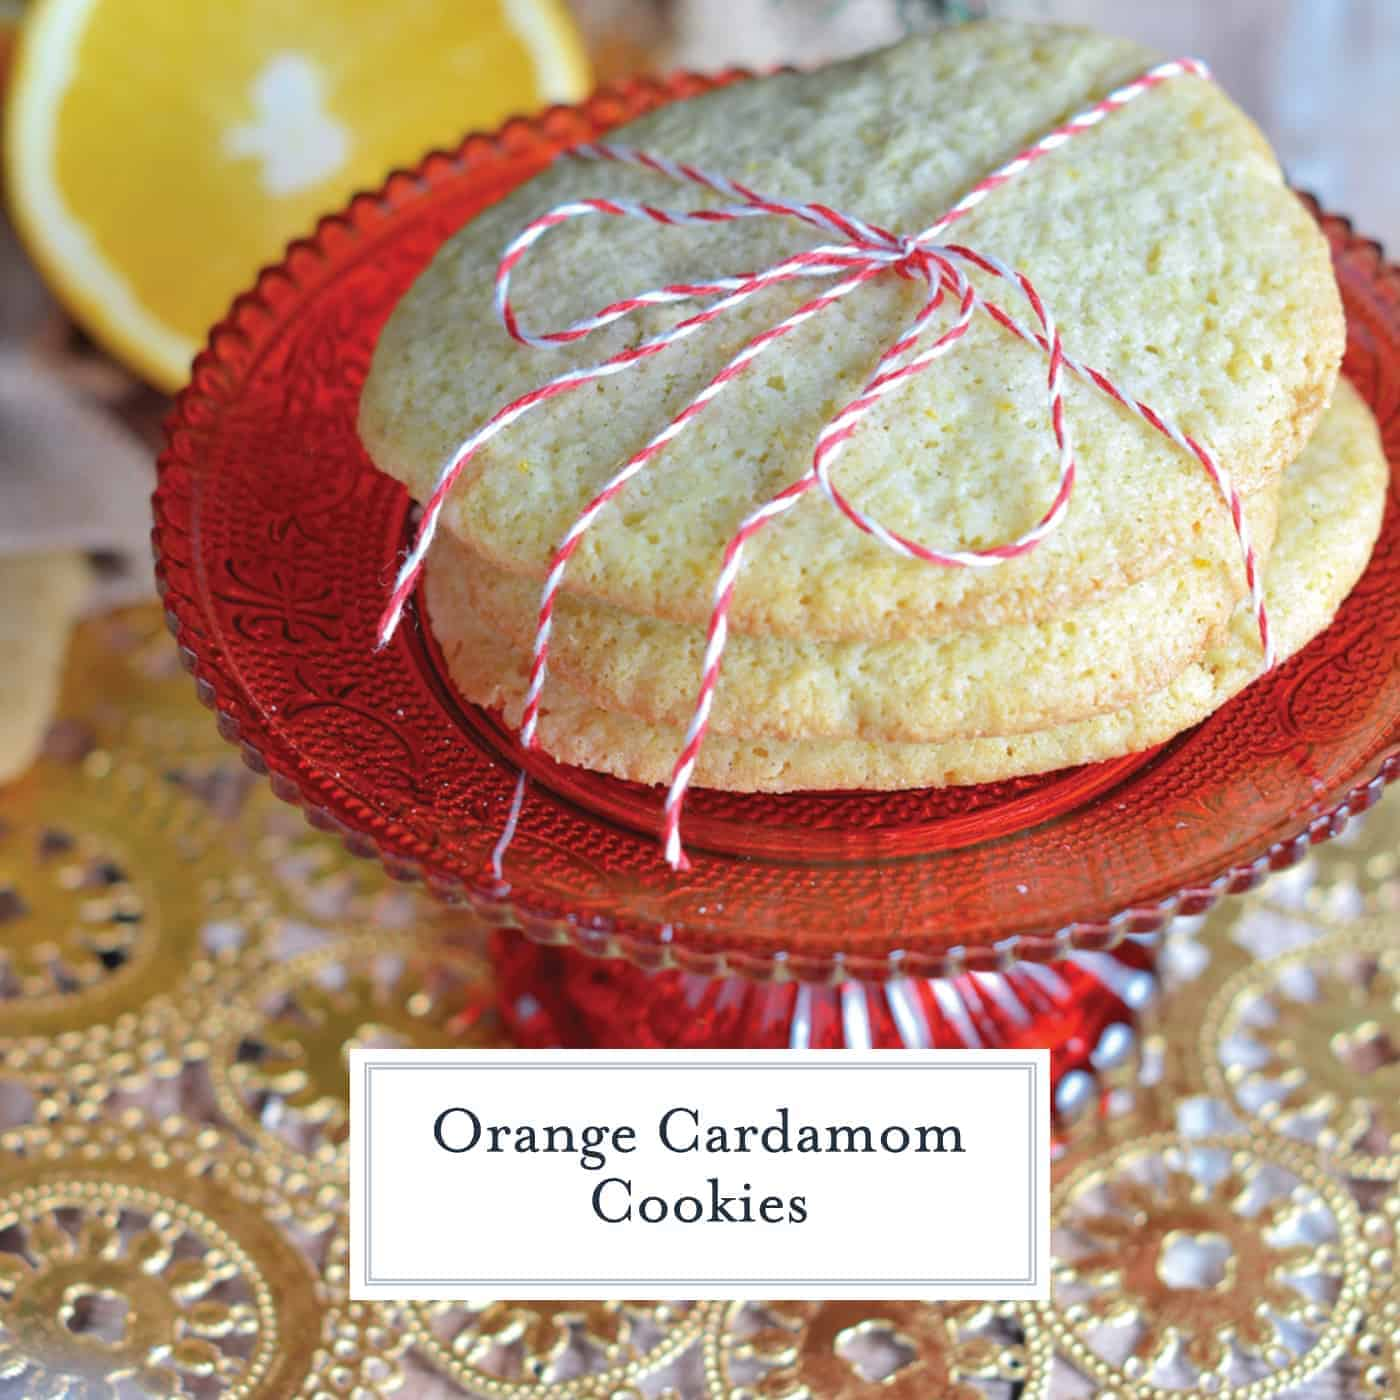 Orange Cardamom Cookies  provide a festive flavor for holiday slice and bake cookies. Make ahead and even freeze until you are ready to bake! #freezercookies #sliceandbakecookies #cardamomcookies #orangecookies www.savoryexperiments.com